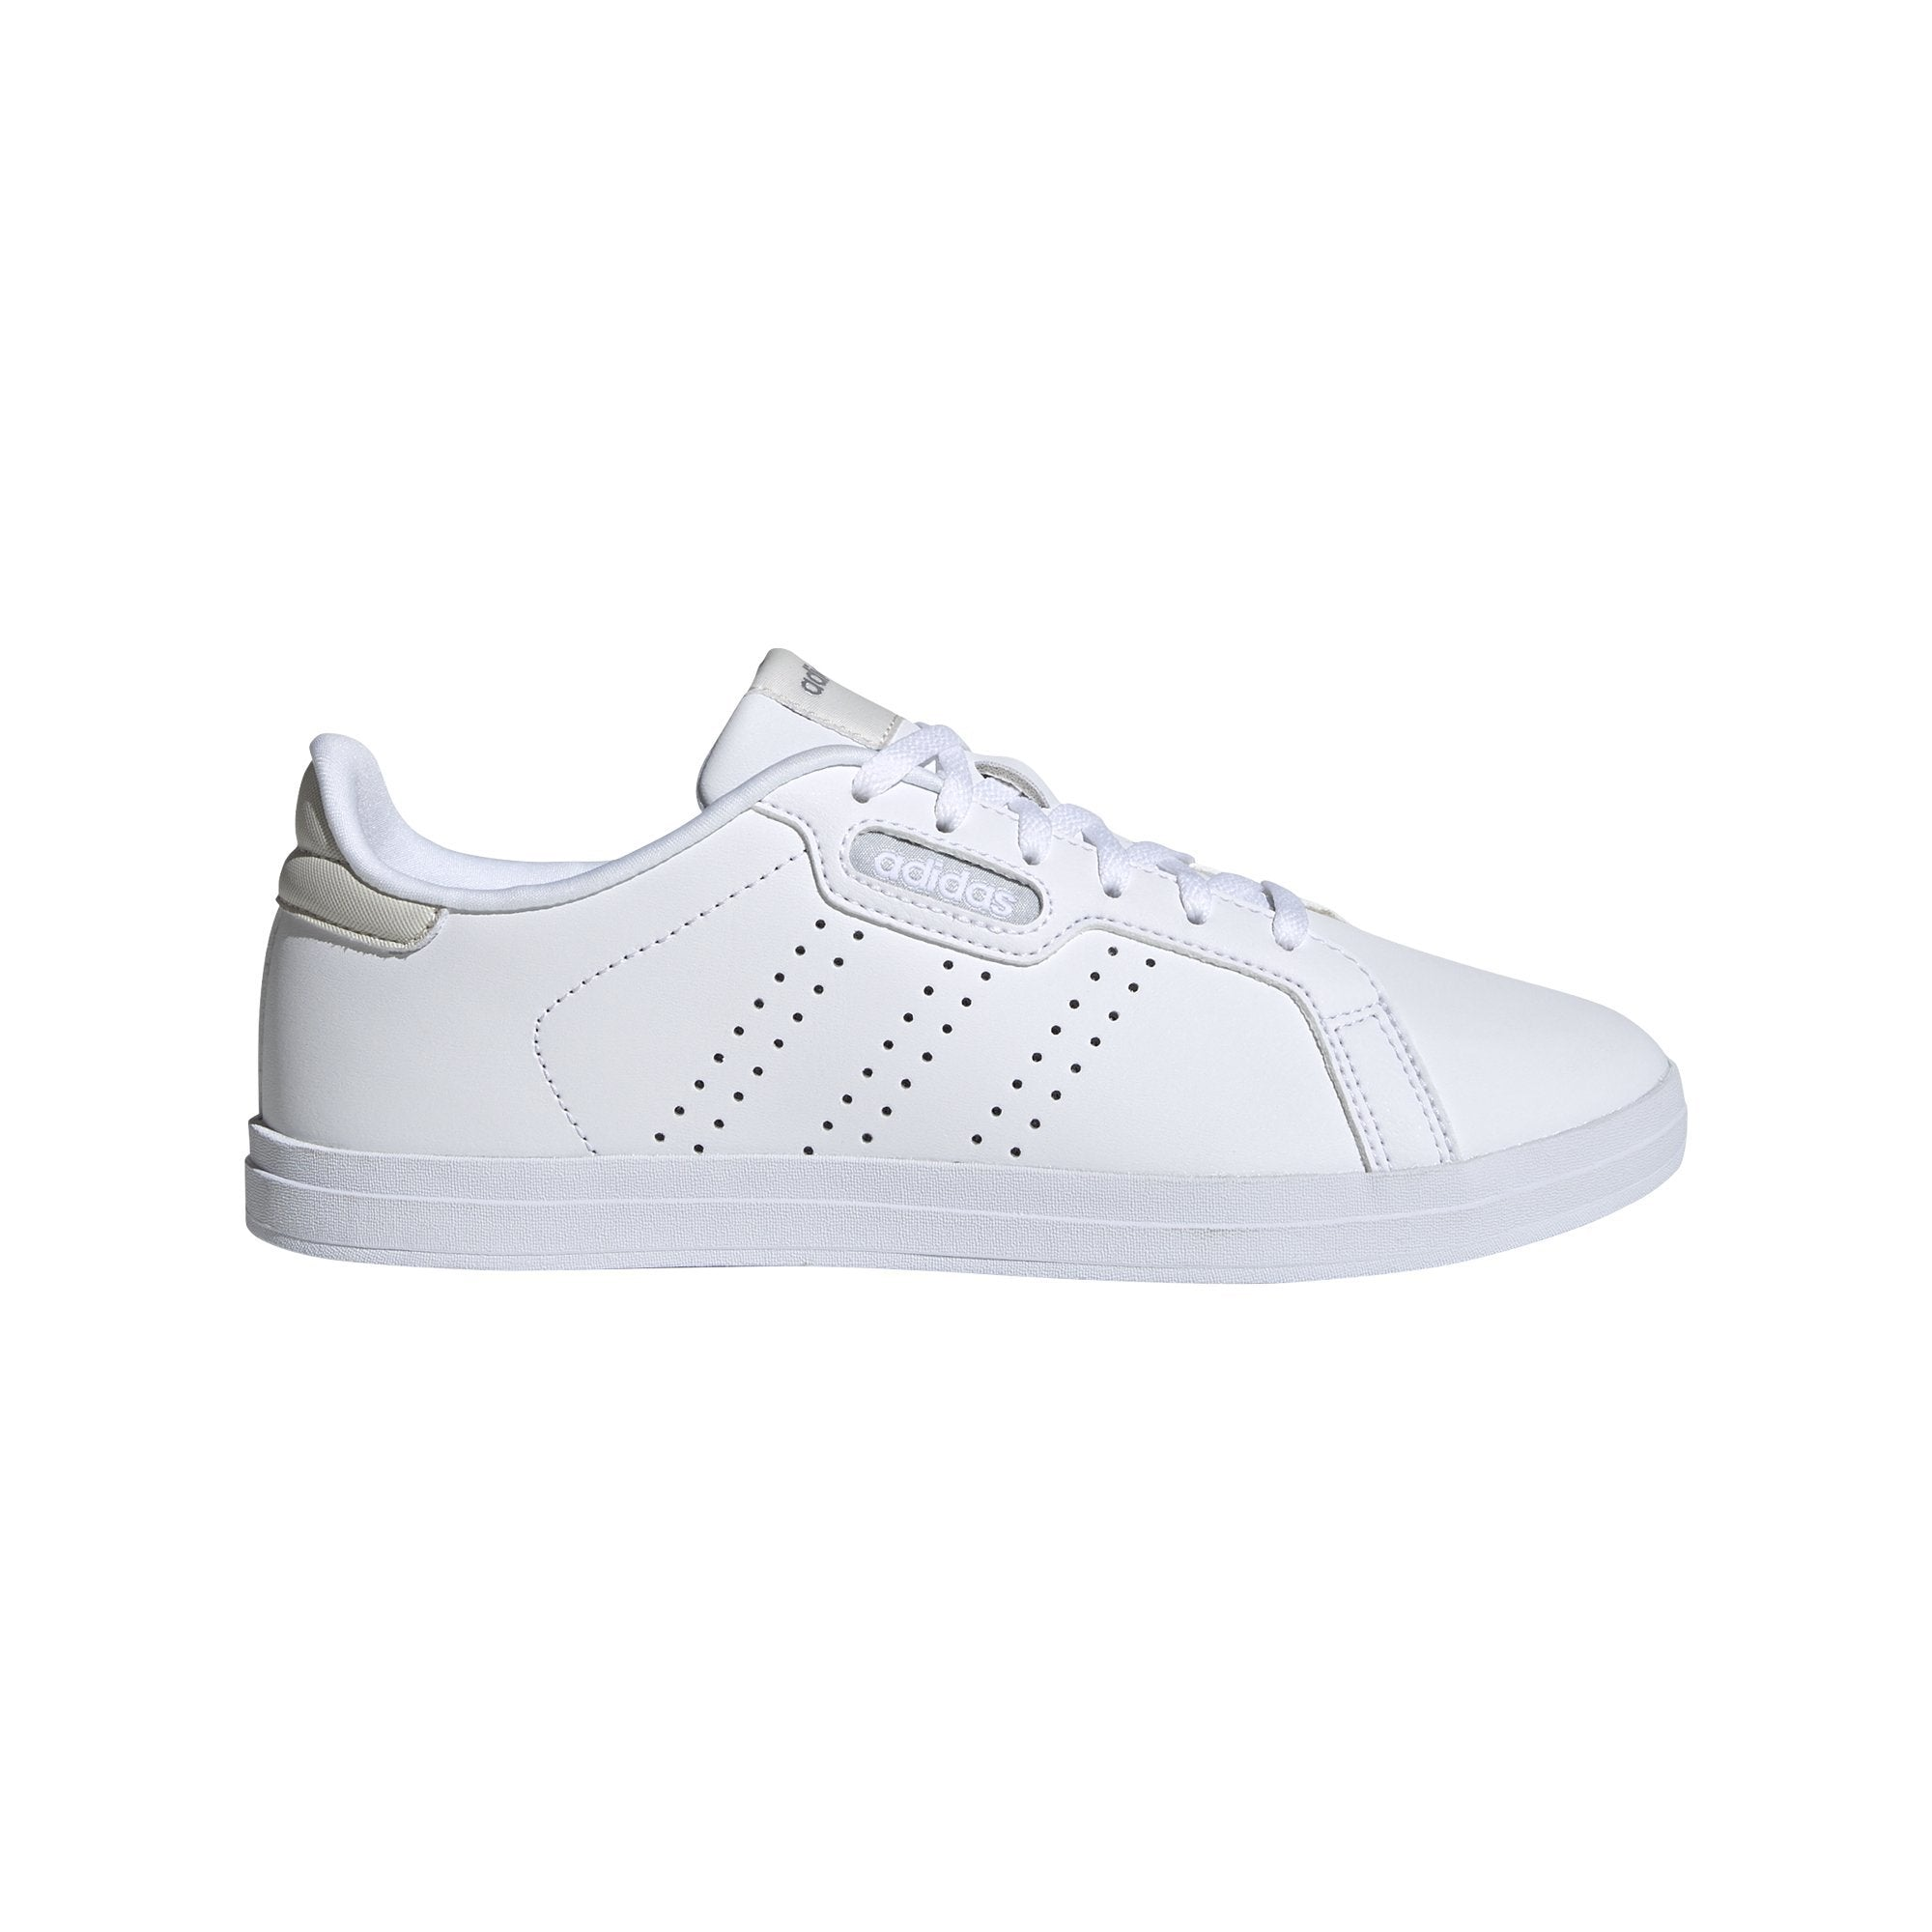 Adidas Womens Courtpoint CL X Shoes - Ftwr White/Ftwr White/Orbit Grey